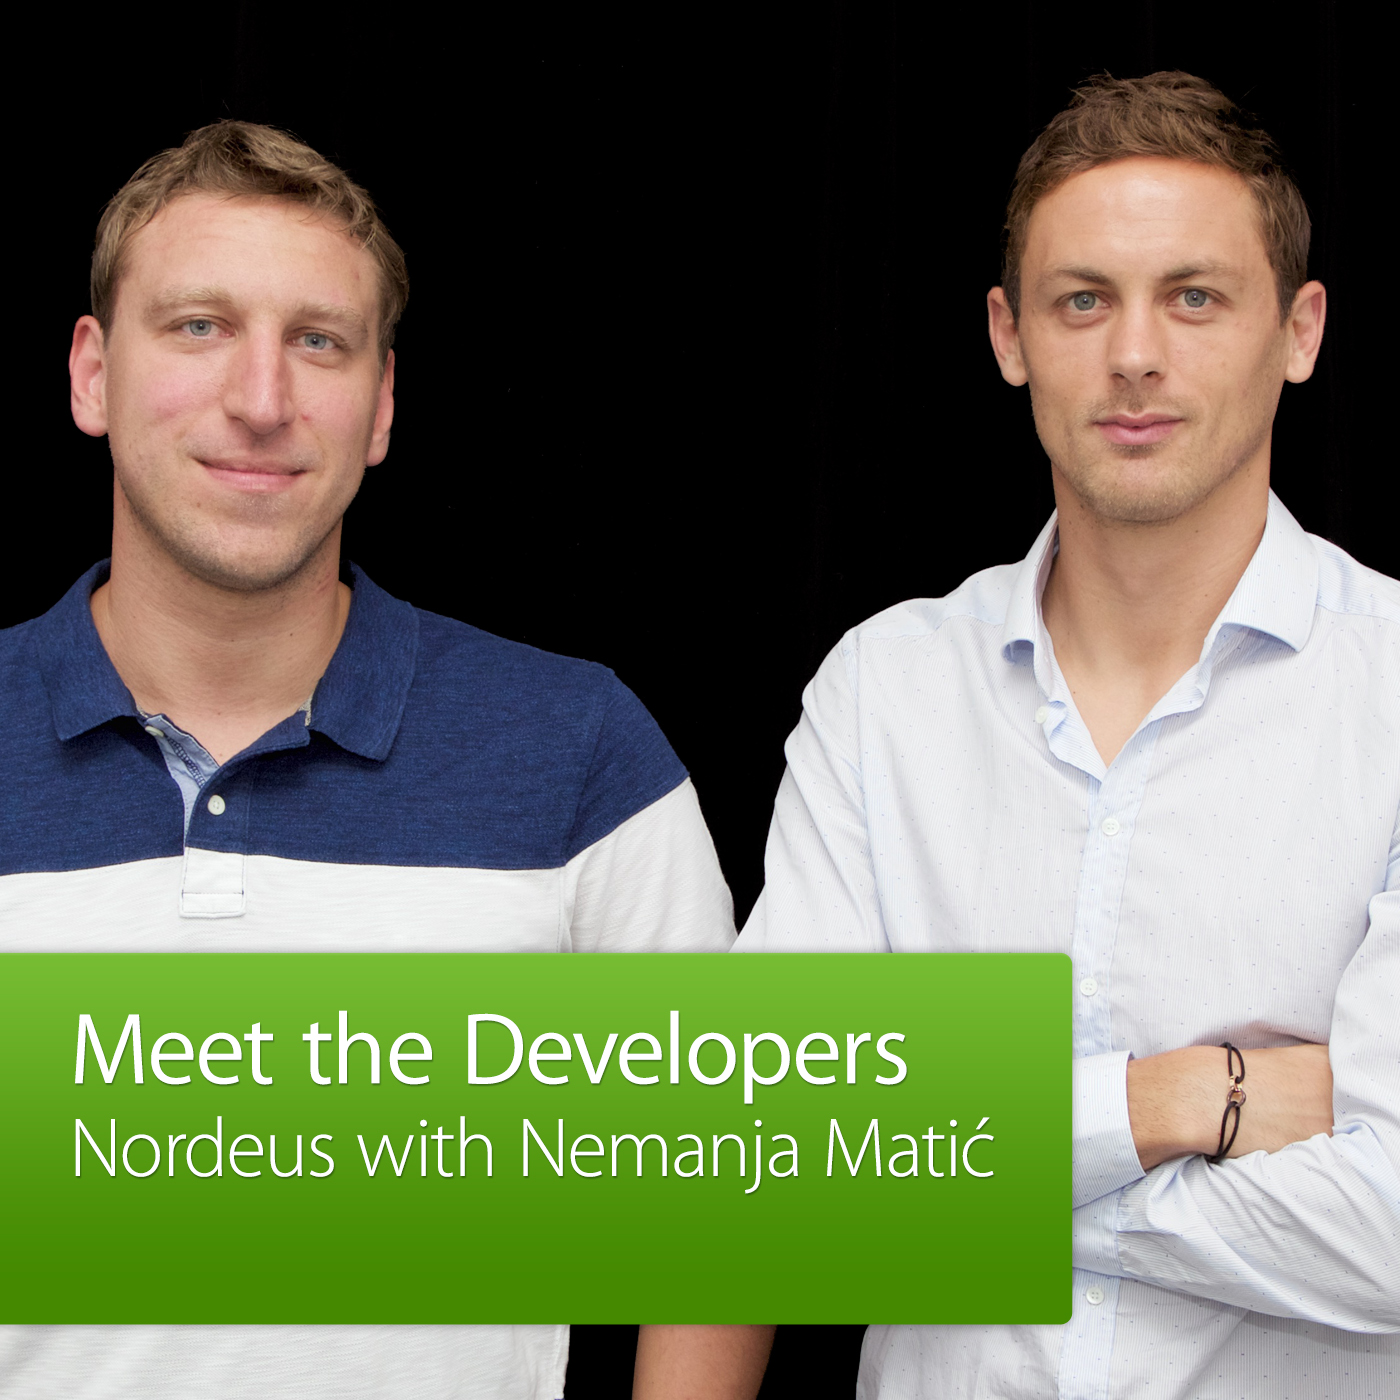 Nordeus with Nemanja Matić: Meet the Developers